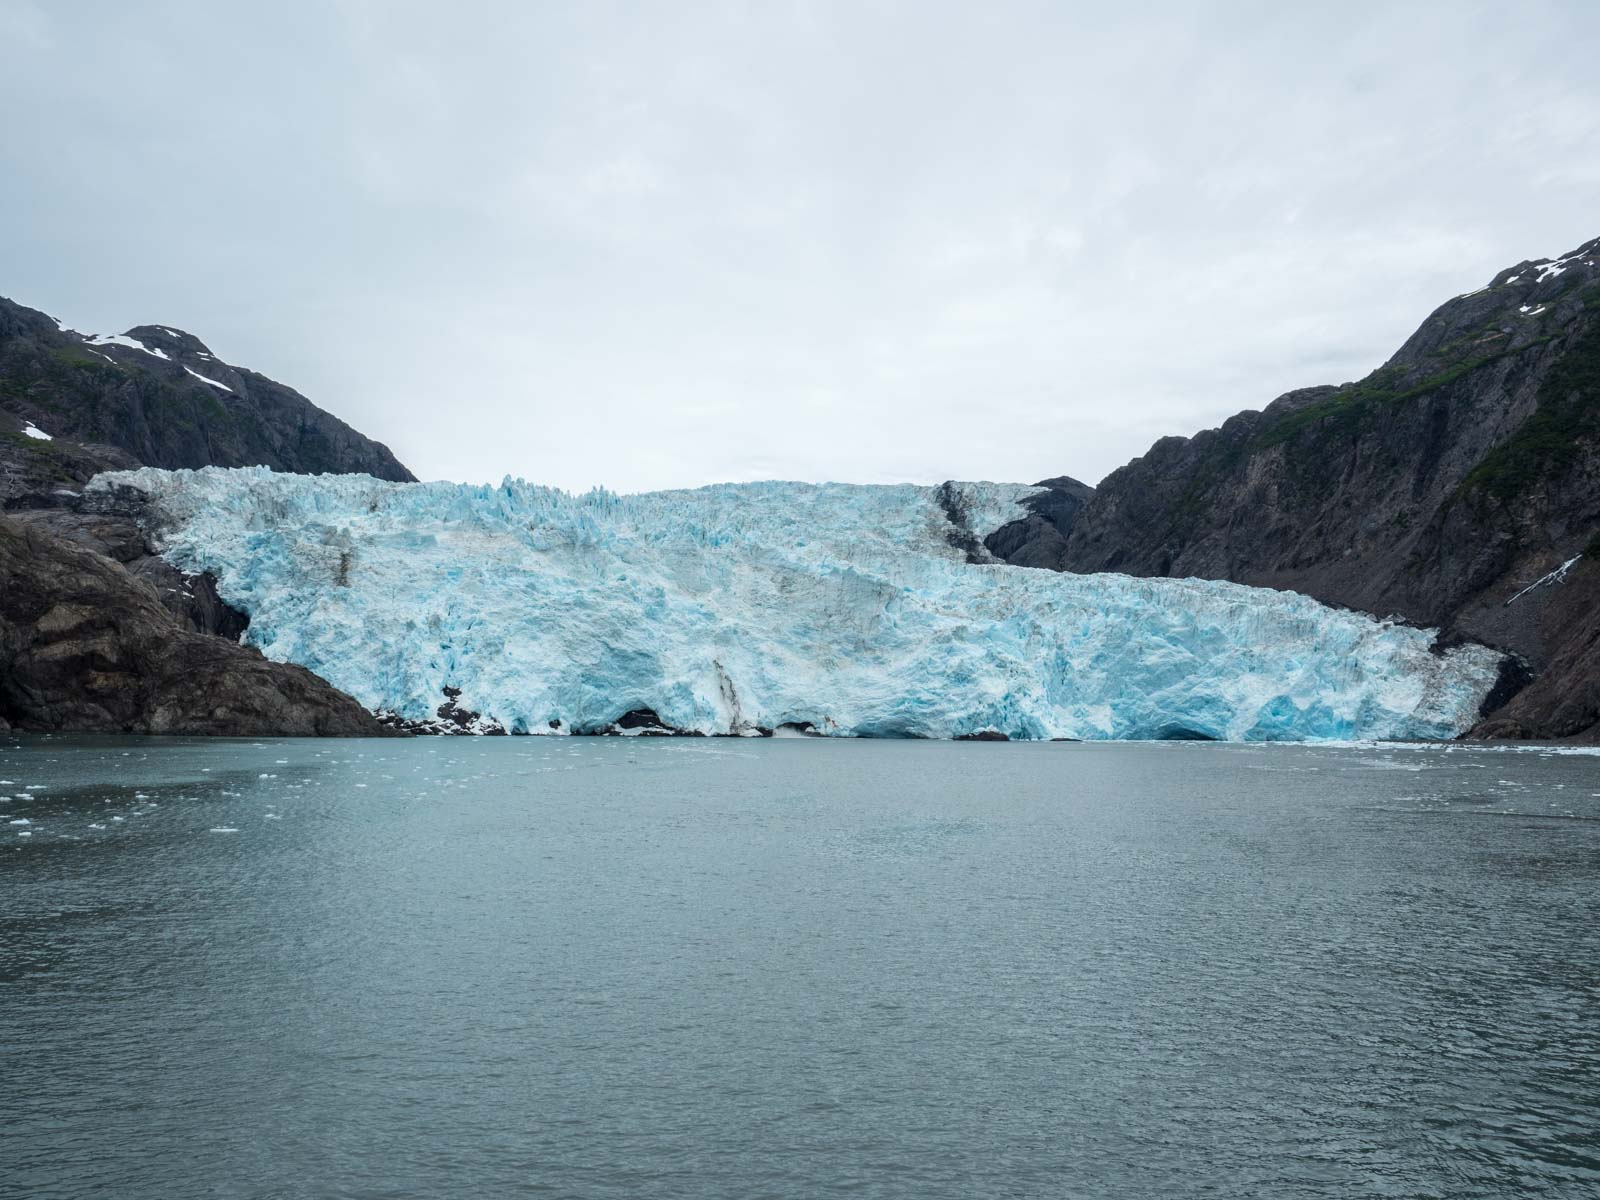 Alaska - The Great Land - Glacier in Kenai Fjord National Park